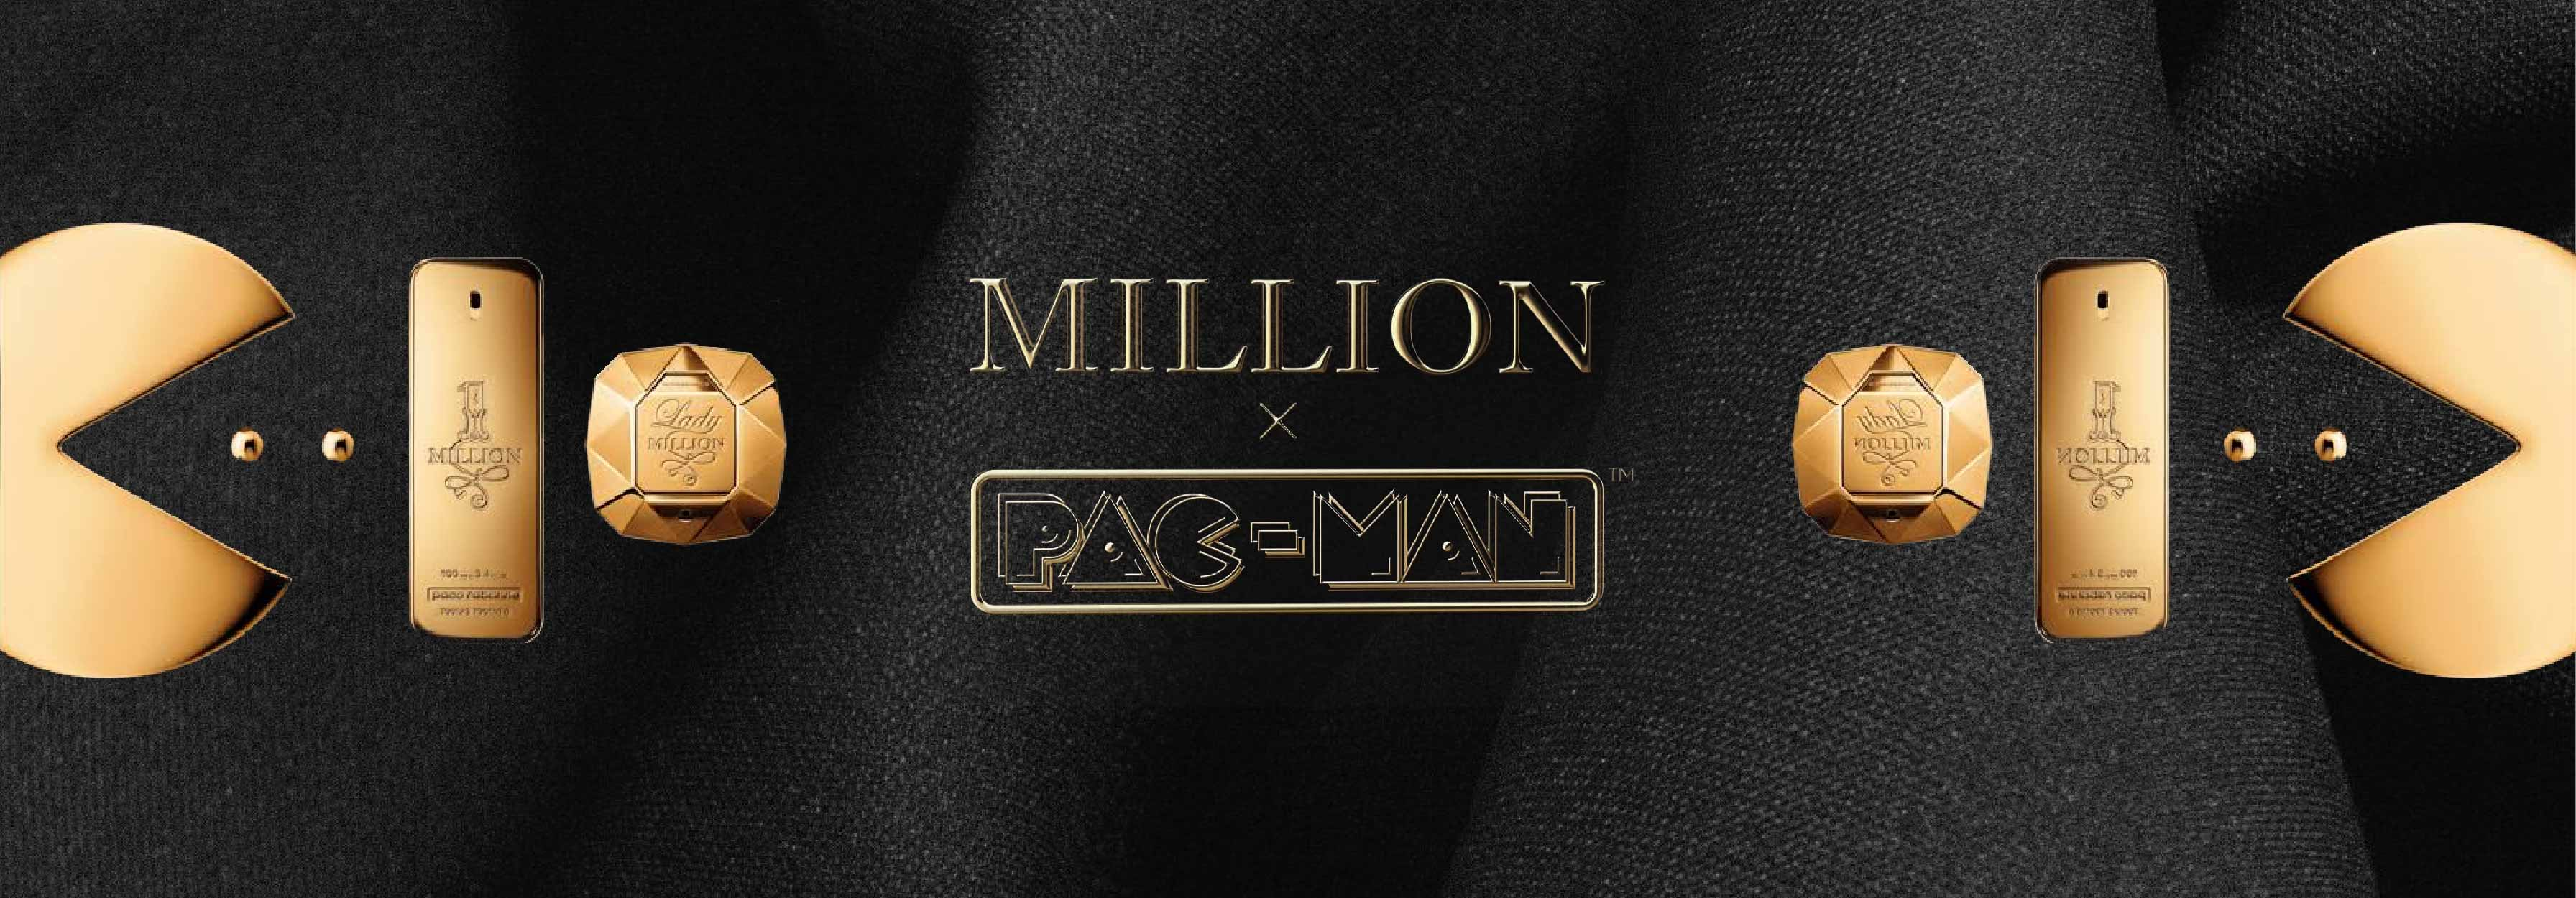 Million PAC MAN